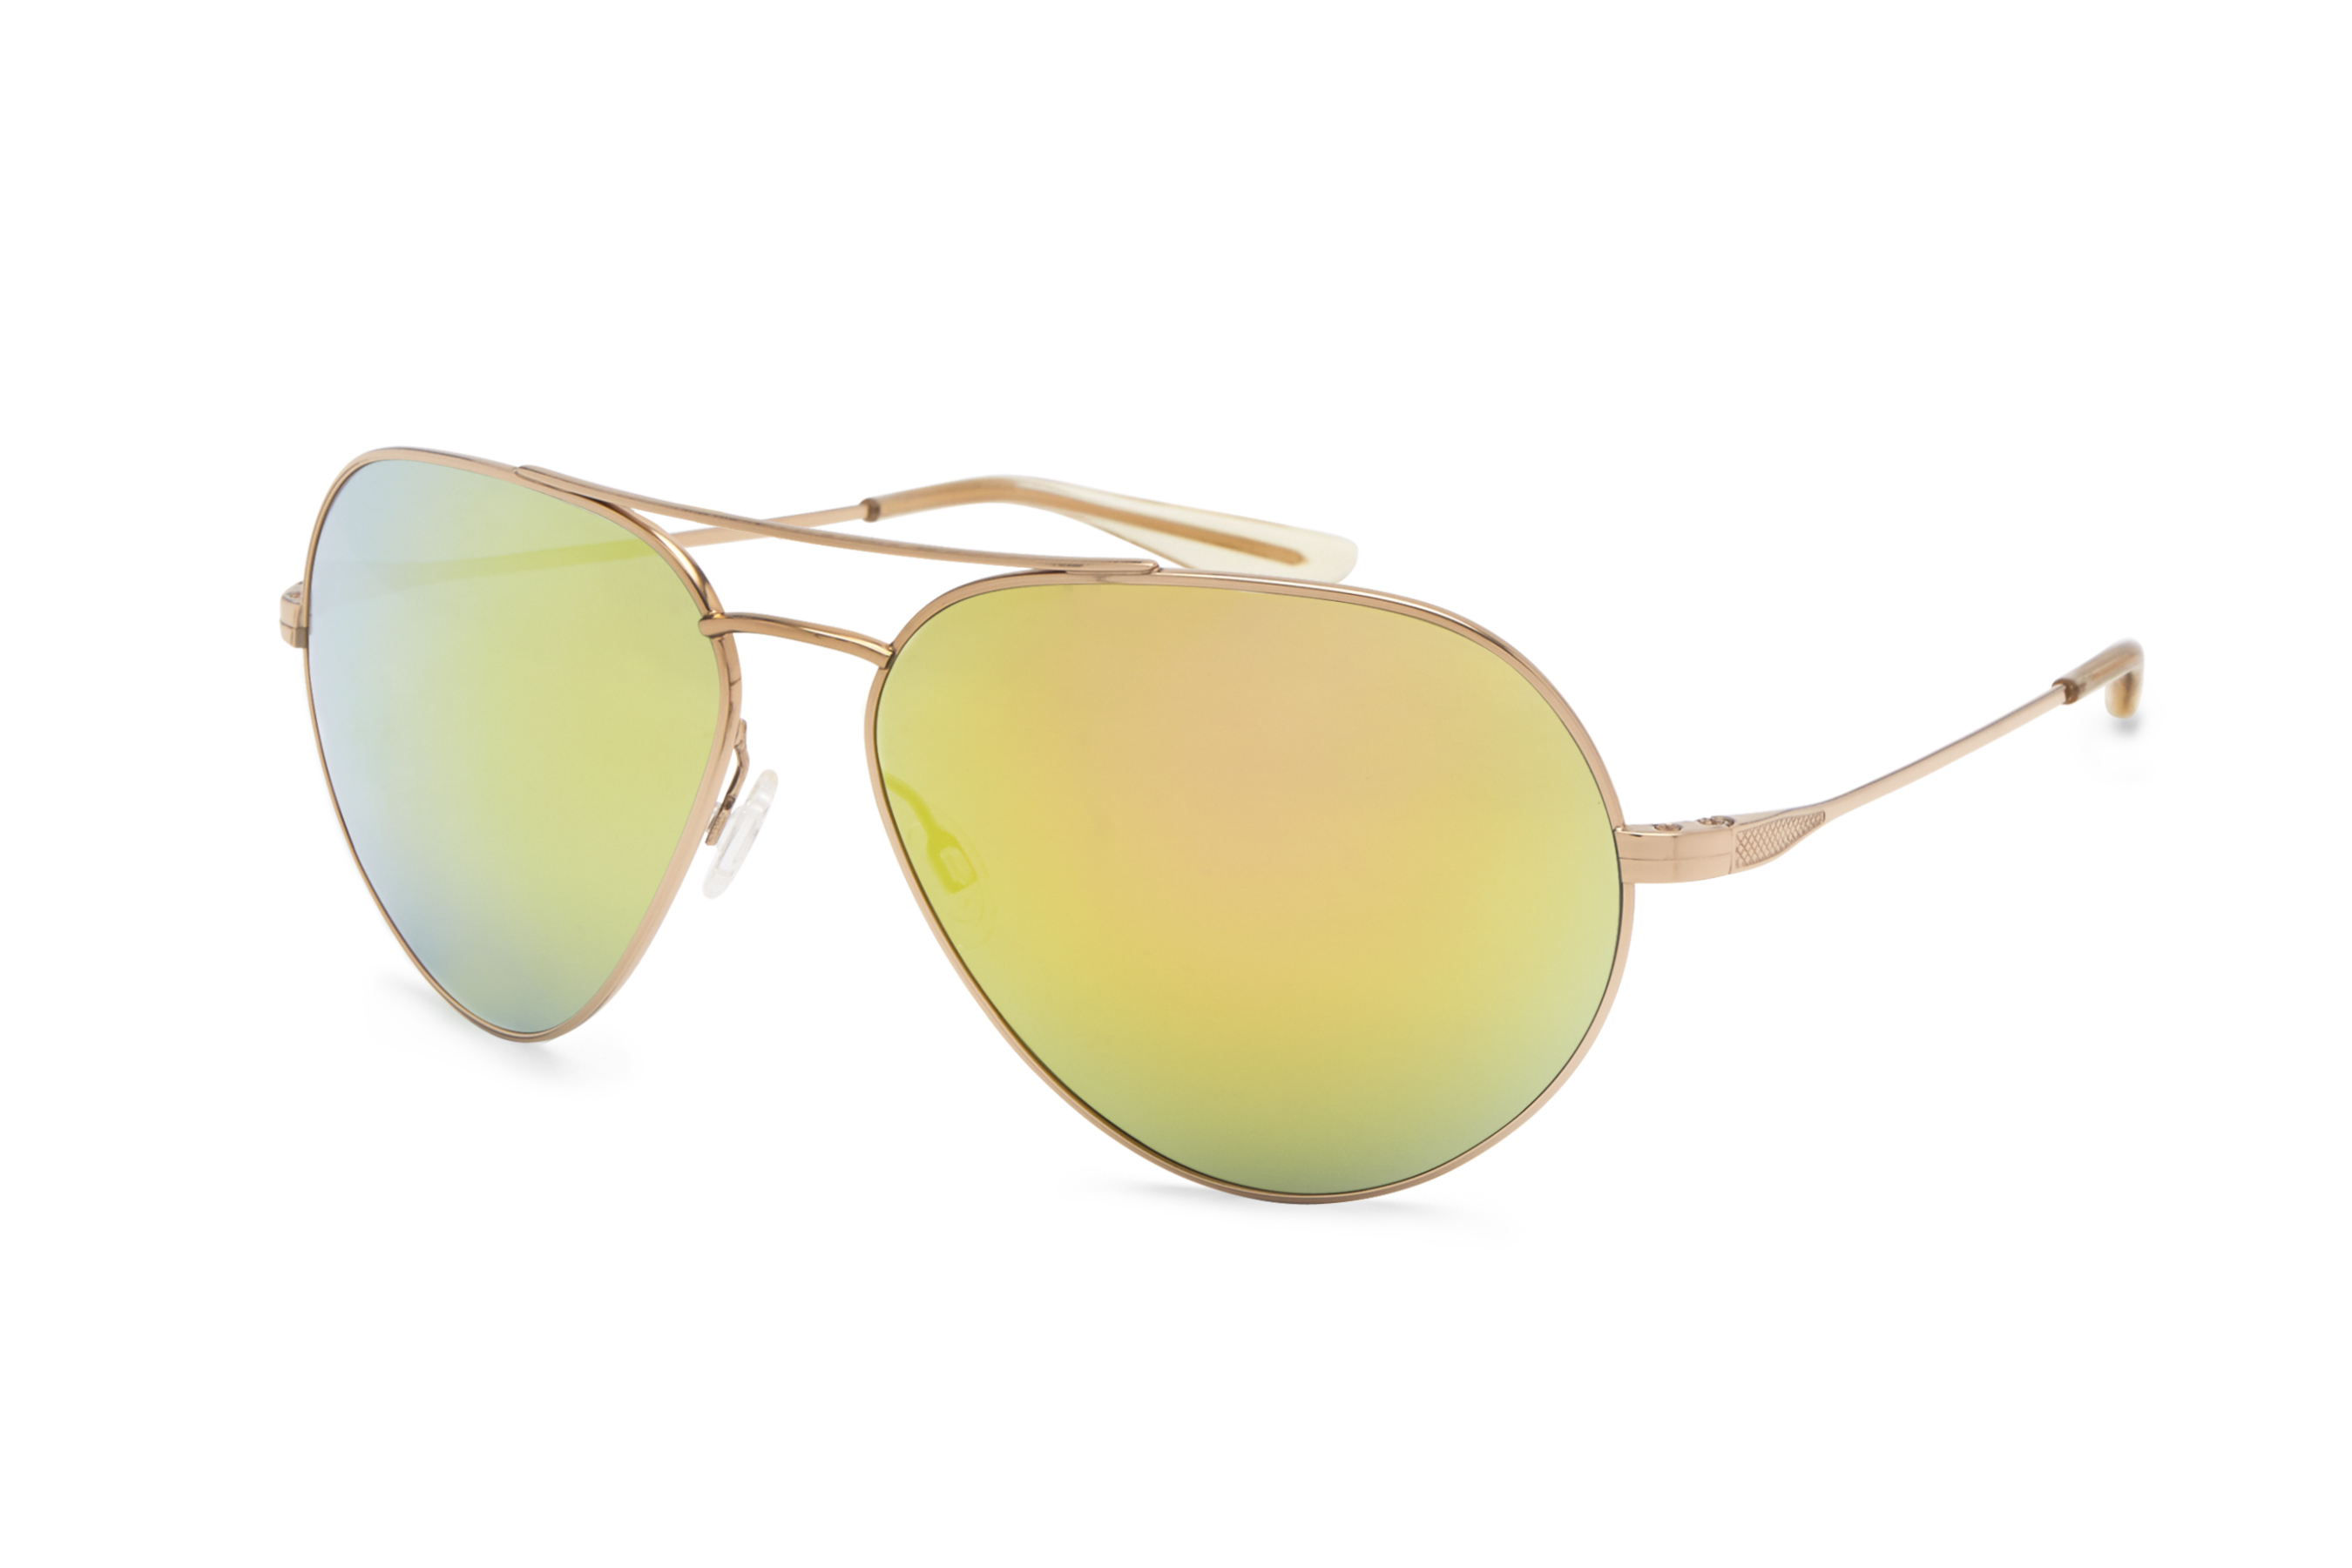 BARTON PERREIRA   frame: COMMODORE in GOLD METAL with EGYPTIAN MIRROR